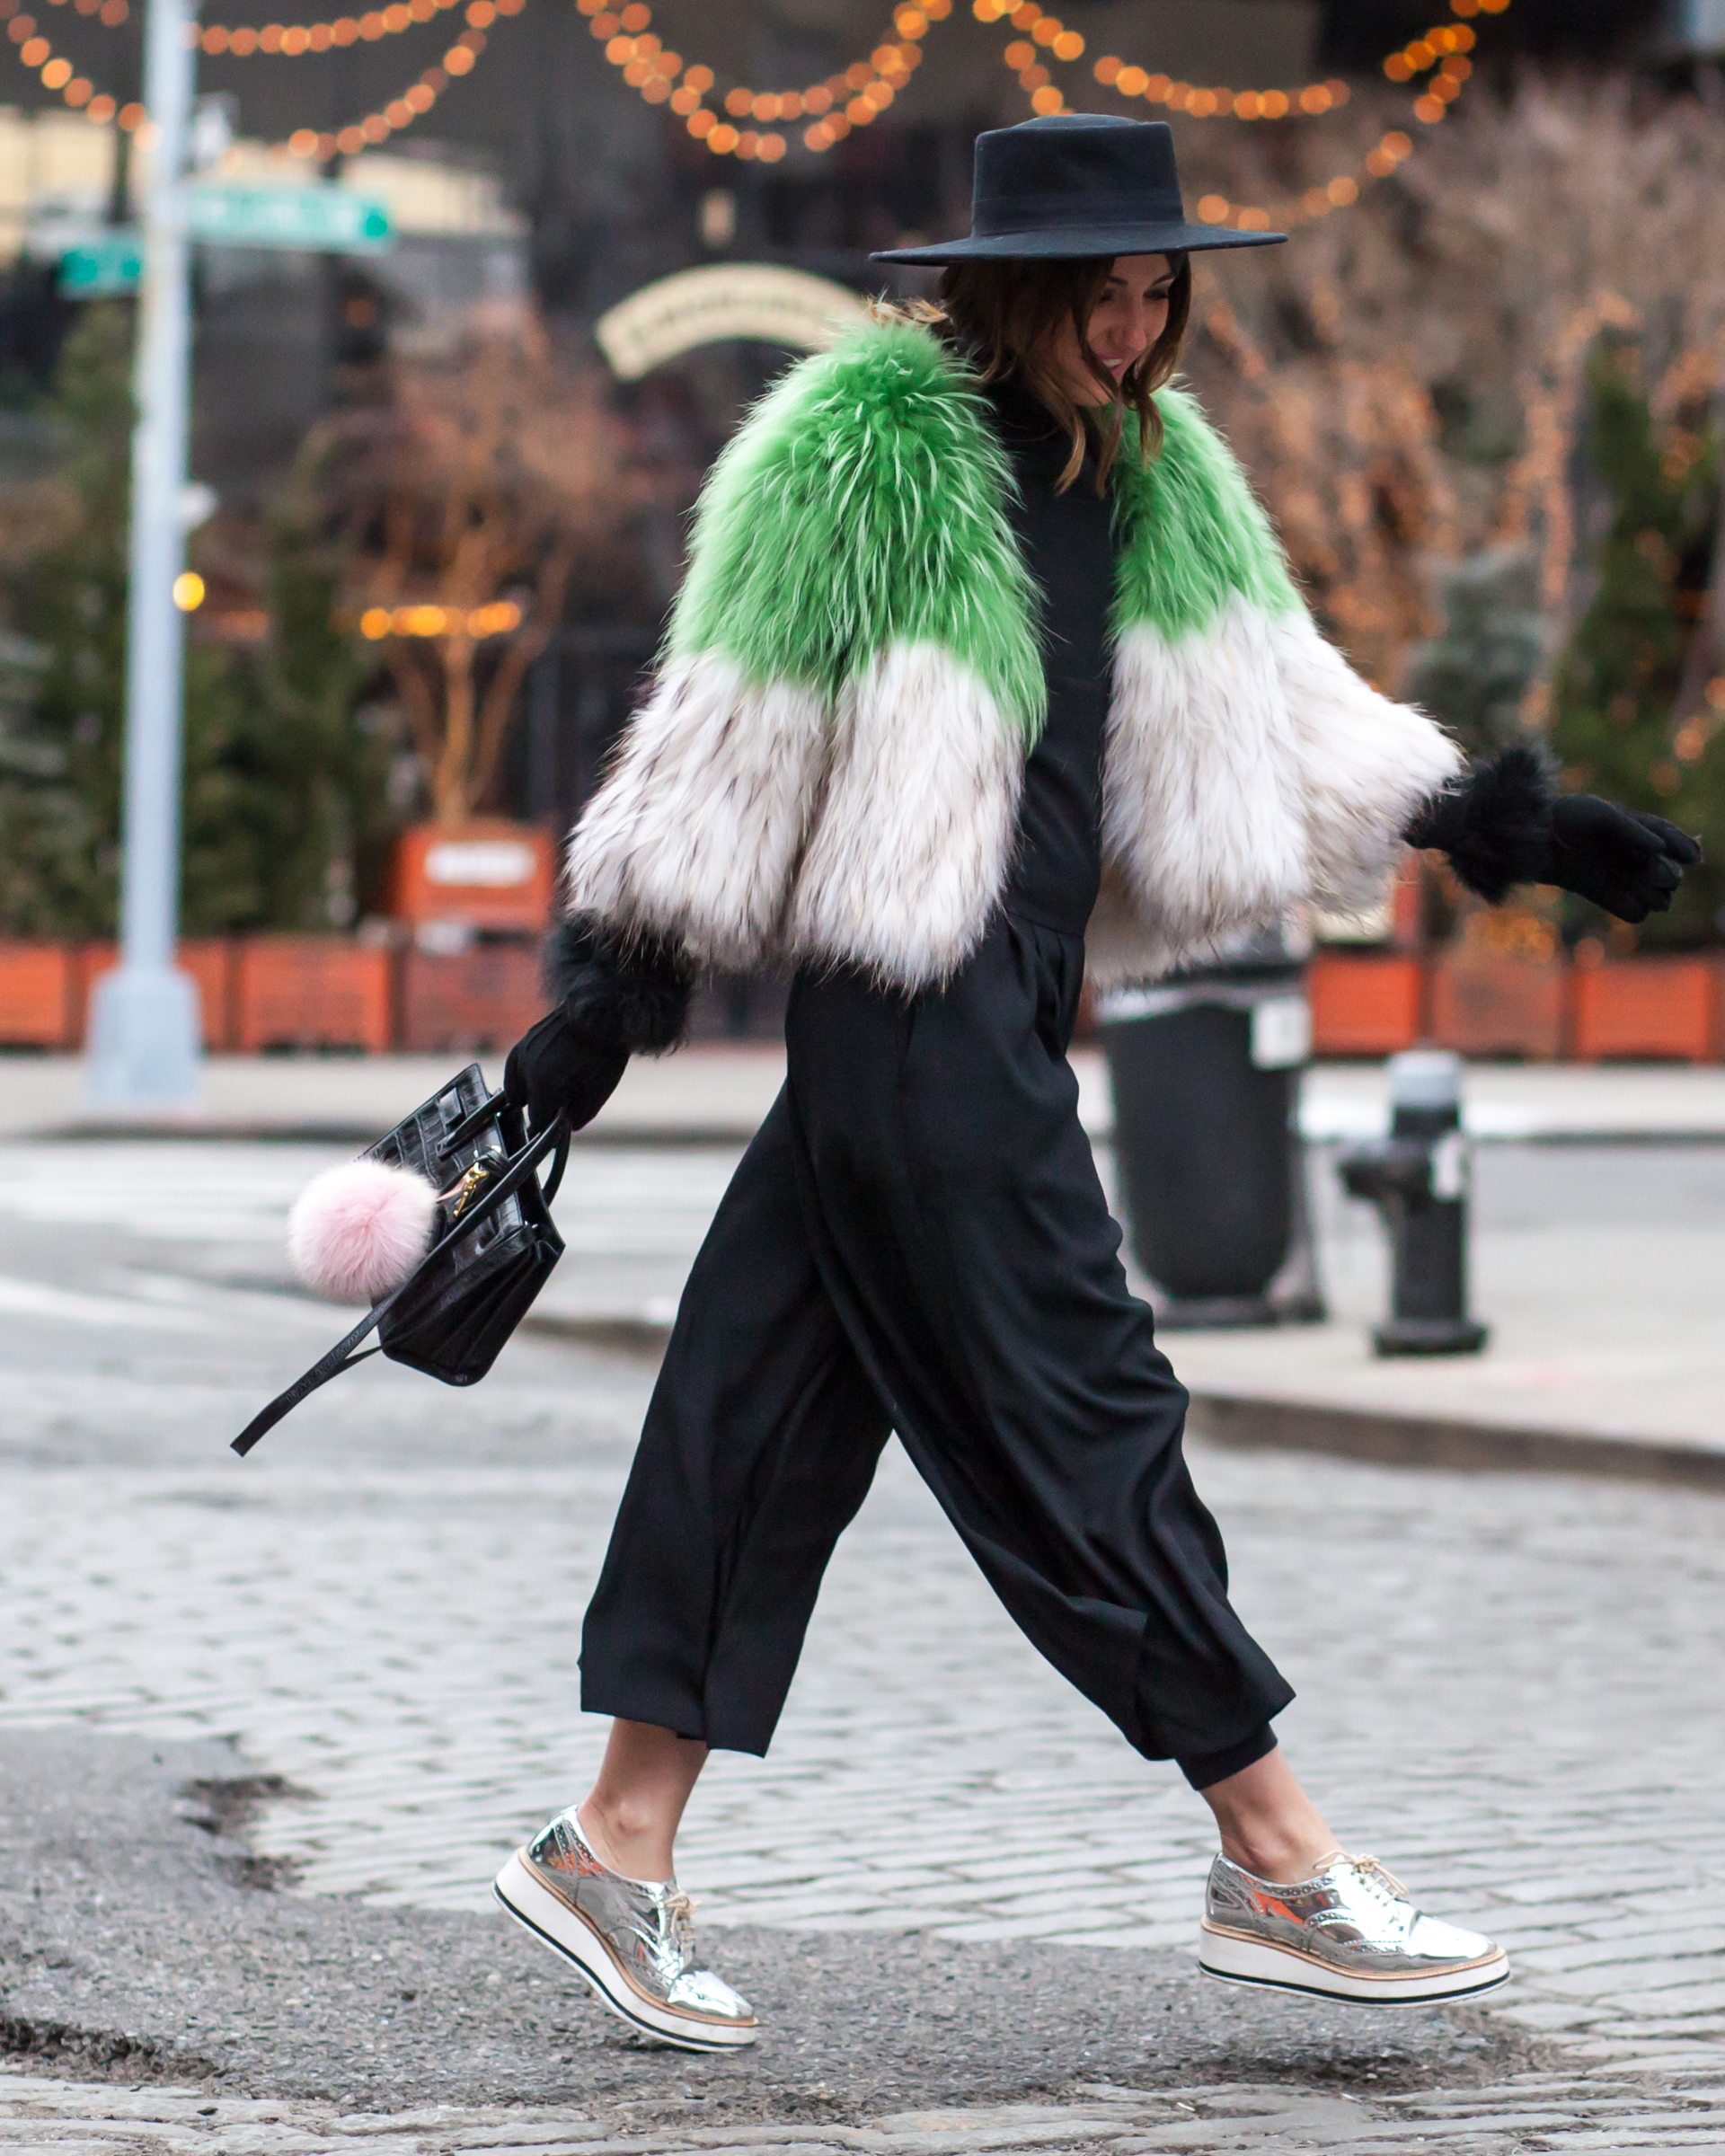 The best looks \u0026amp; bags on the streets during NYFW - Bag at You